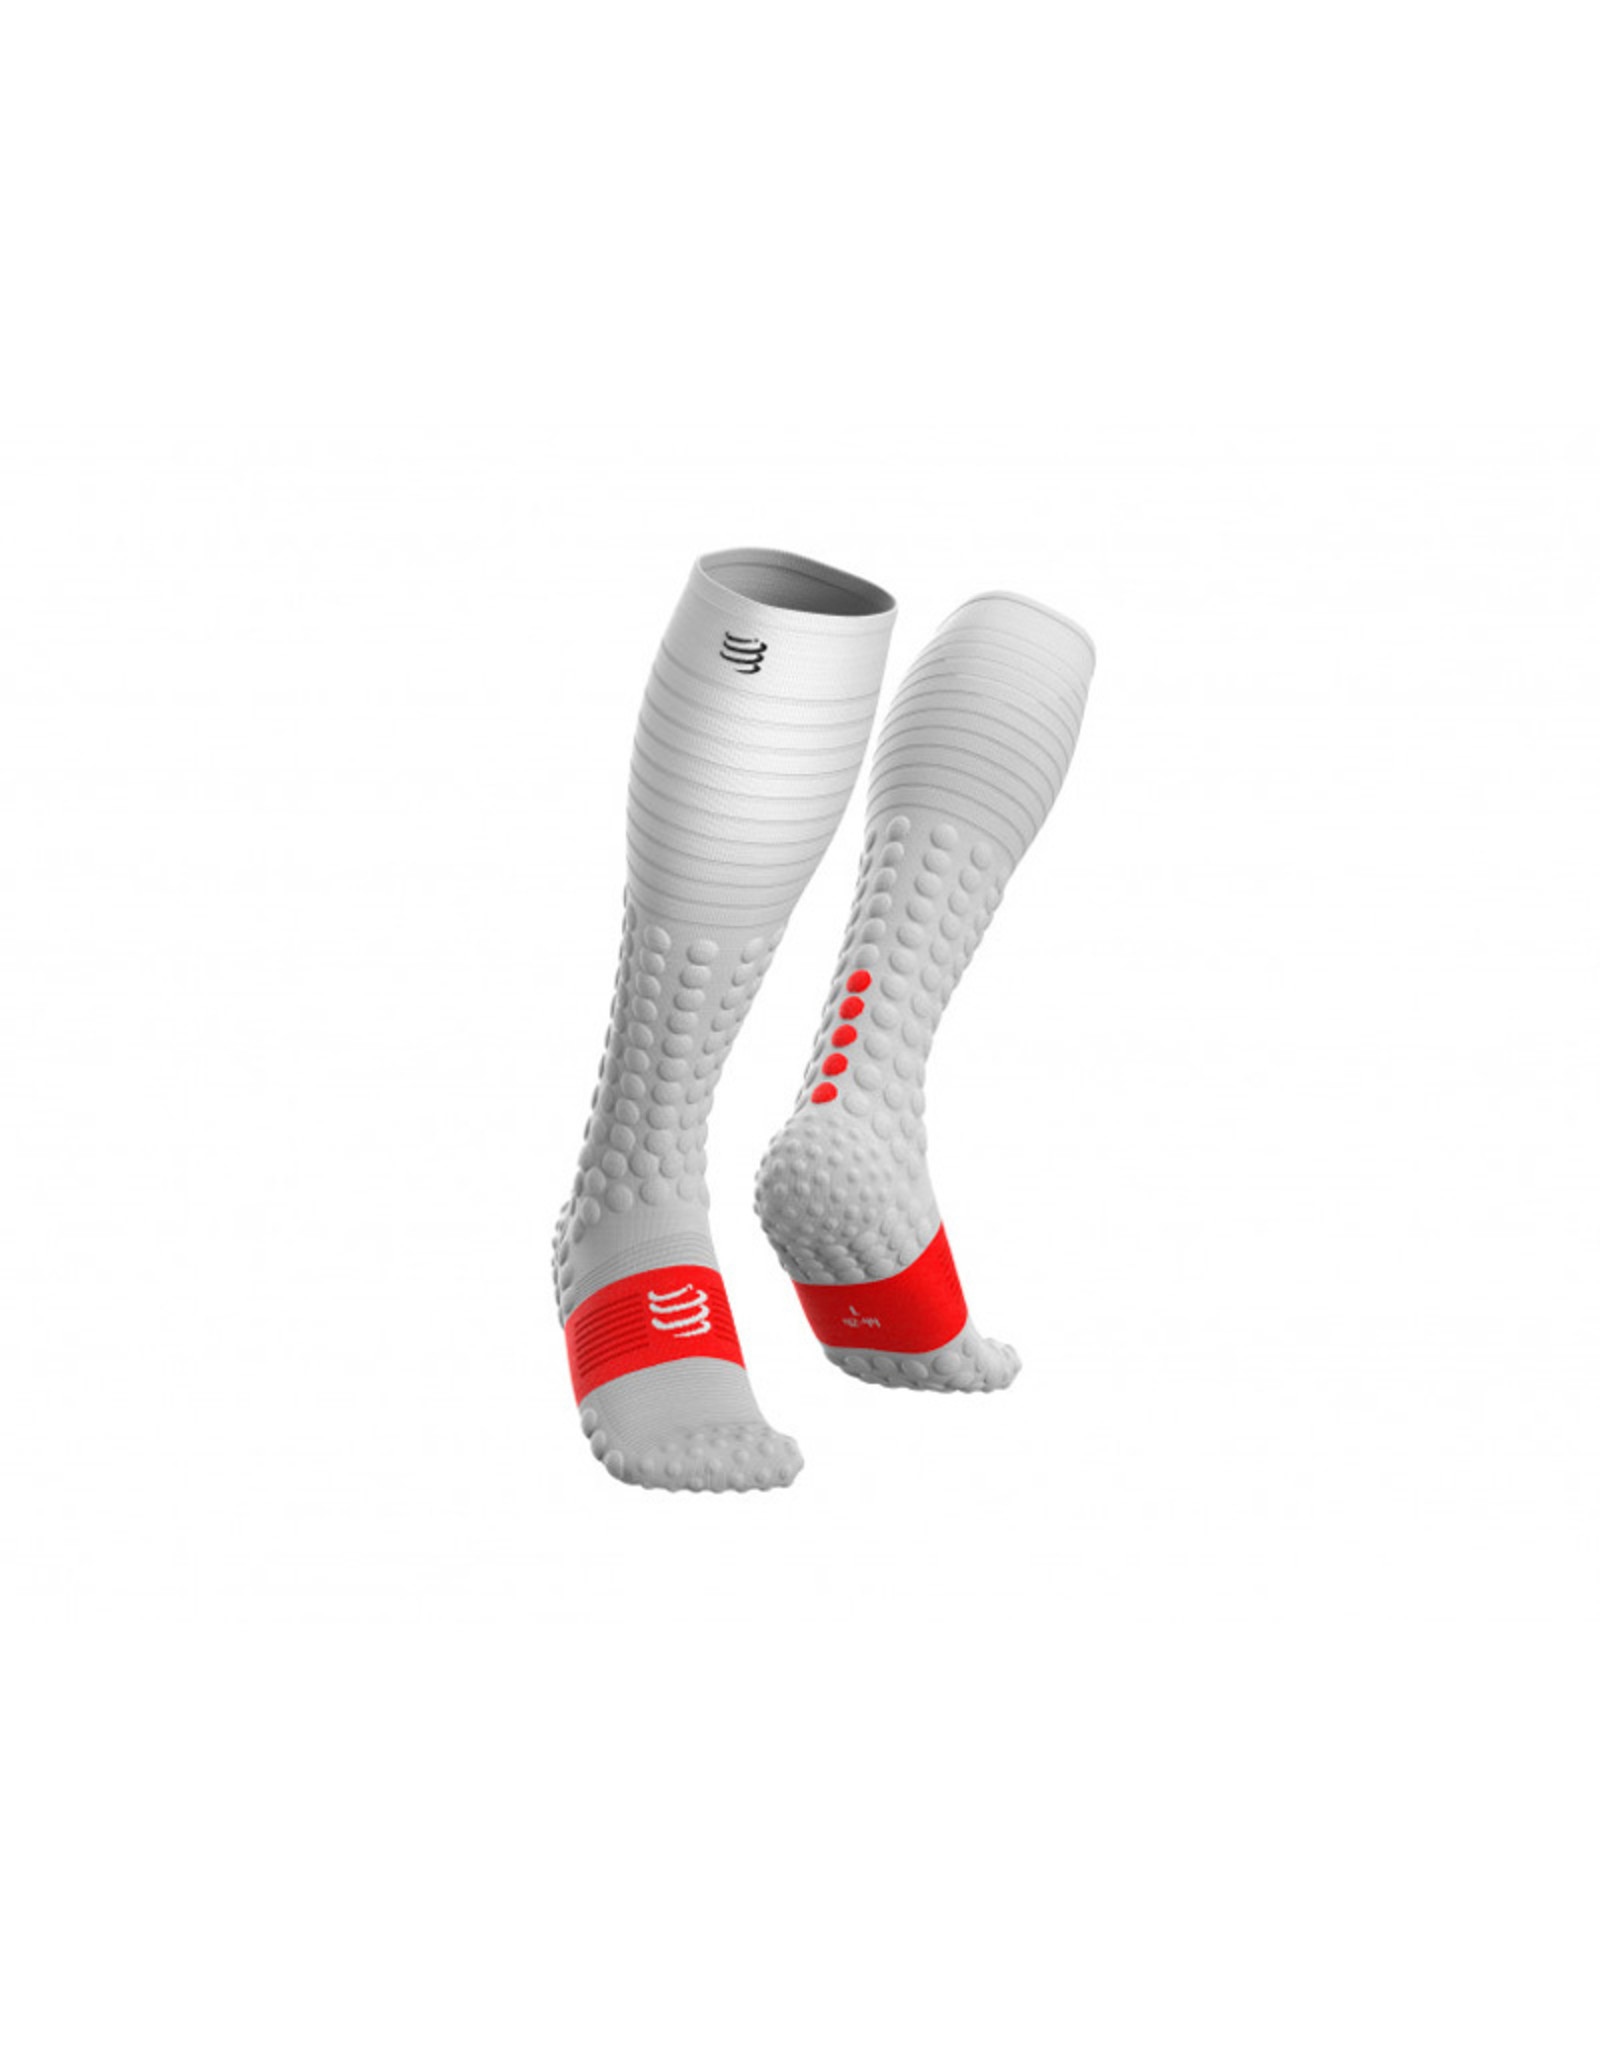 Compressport Full Socks Race & Recovery Chaussettes De Compression - Blanc